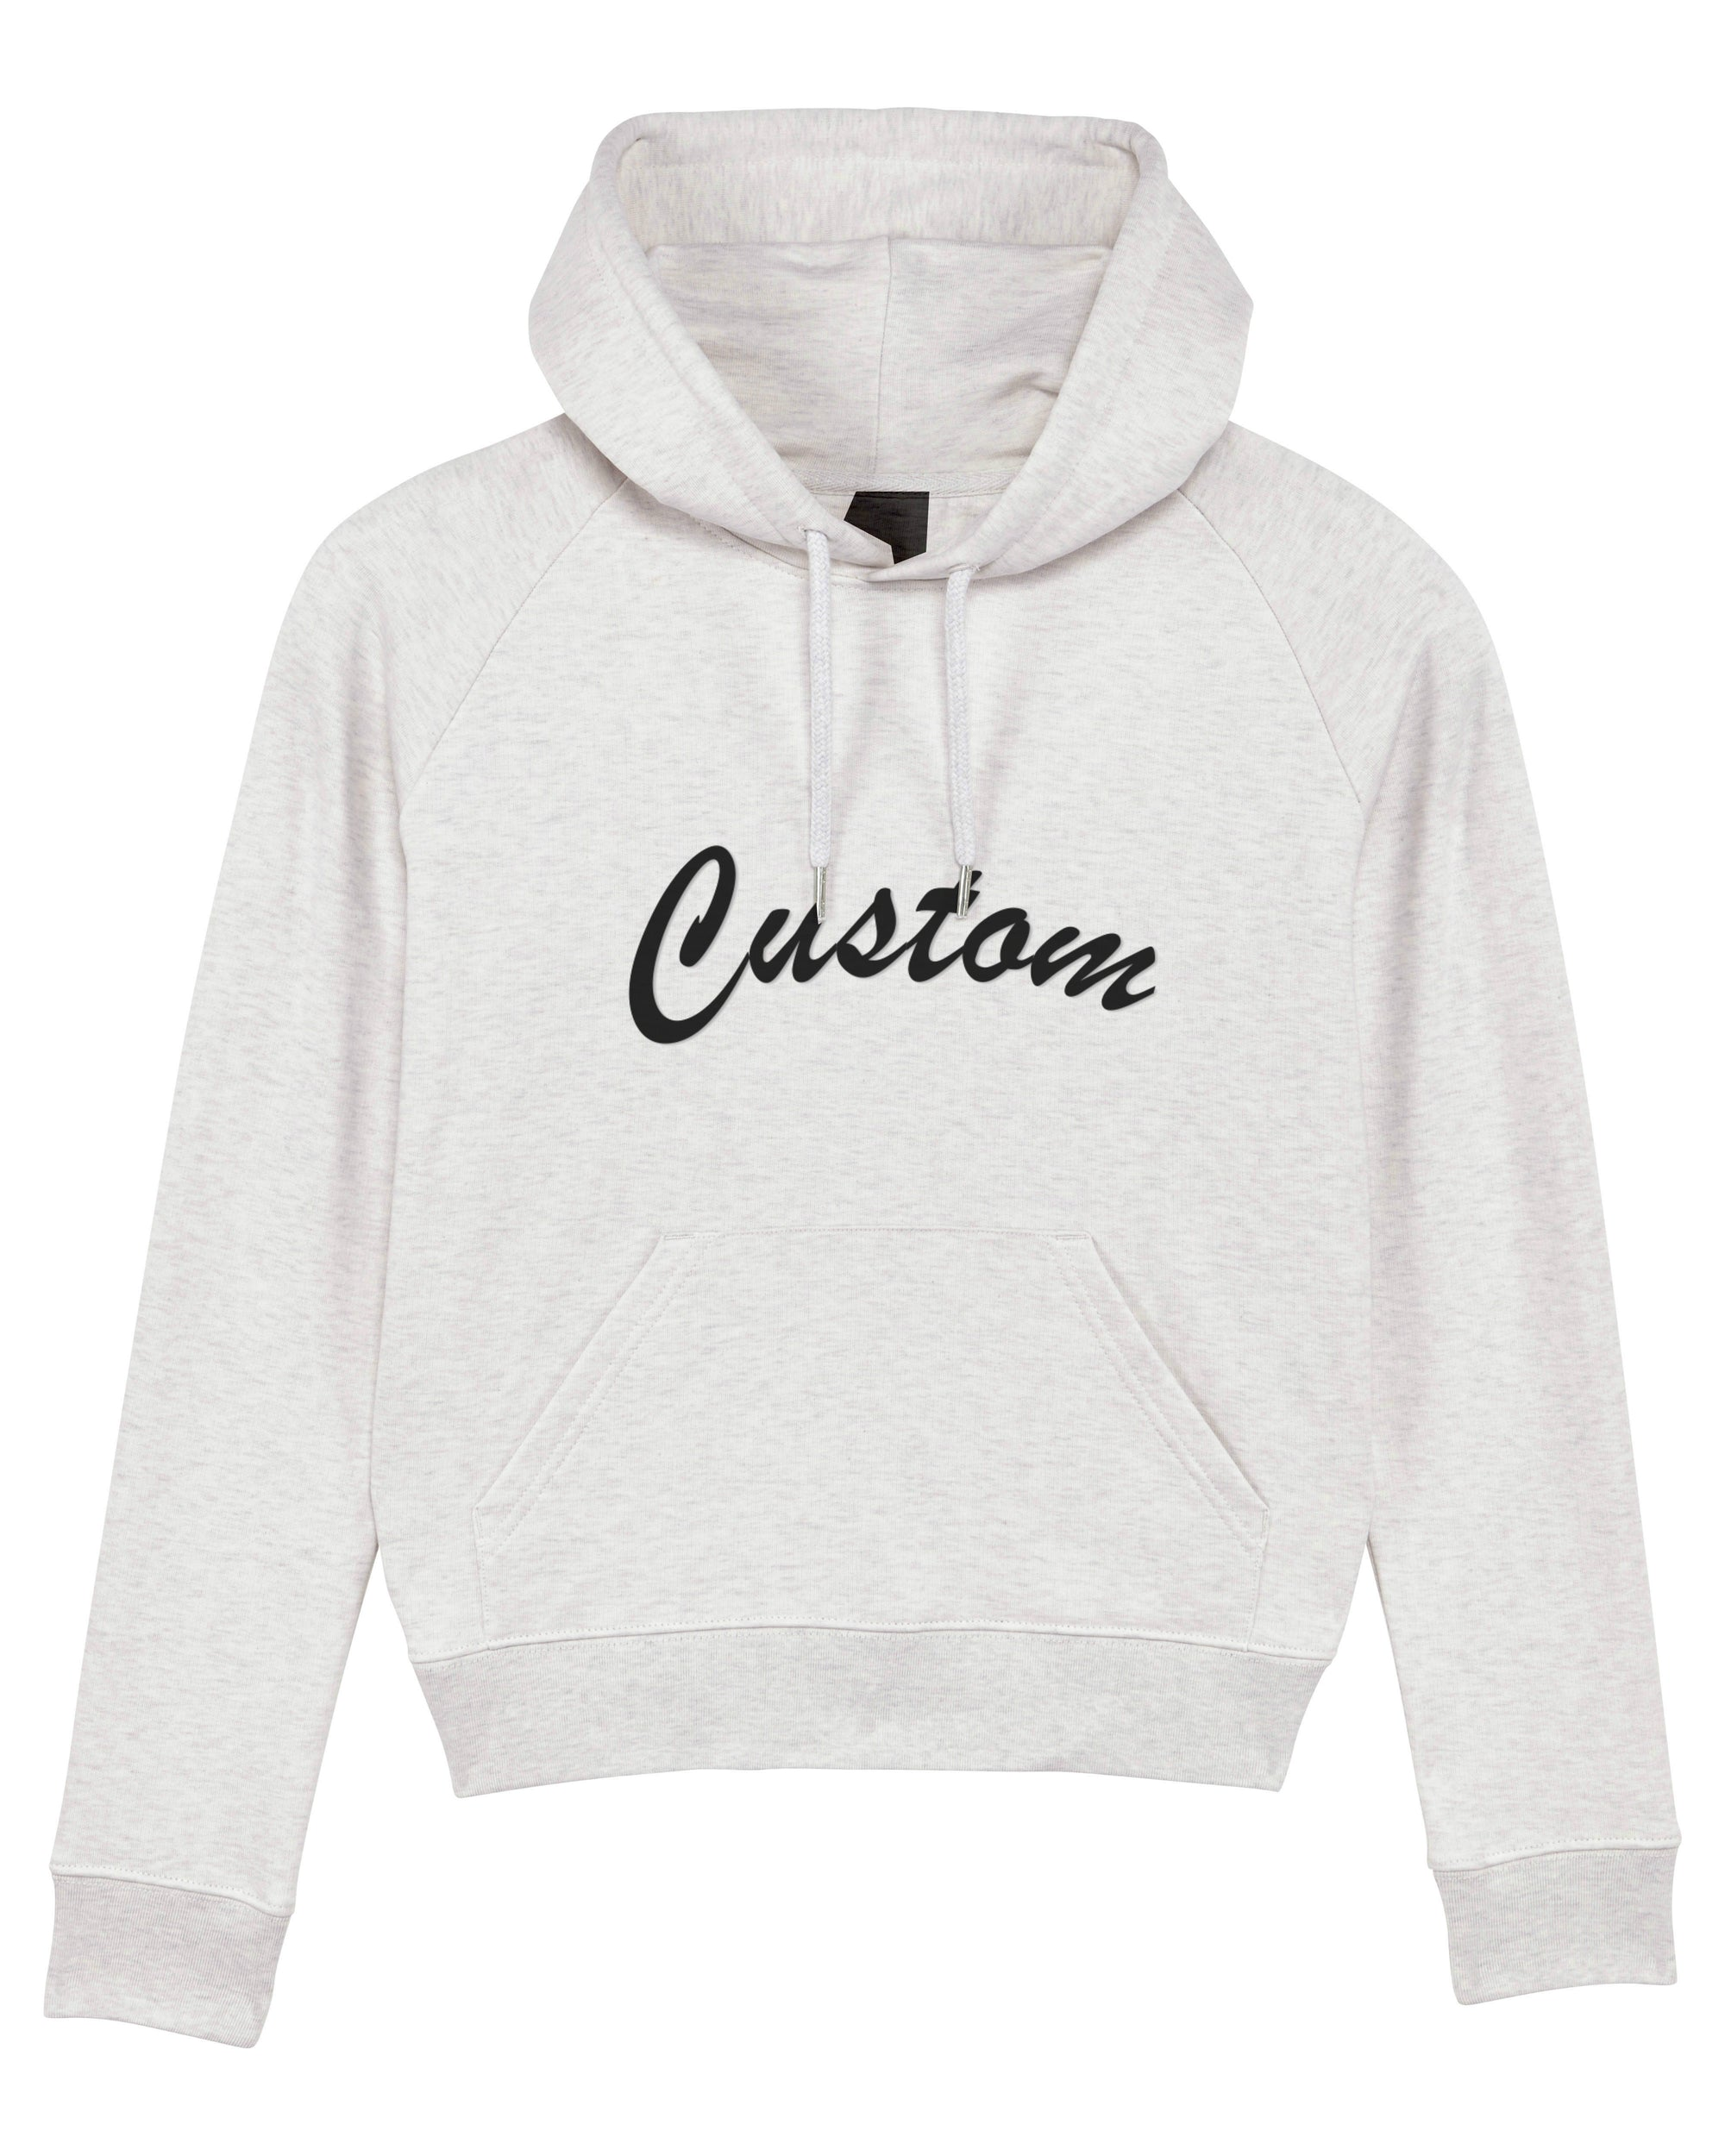 WOMEN'S MEDIUM FIT ORGANIC COTTON HOODIE - customisable centre chest embroidery